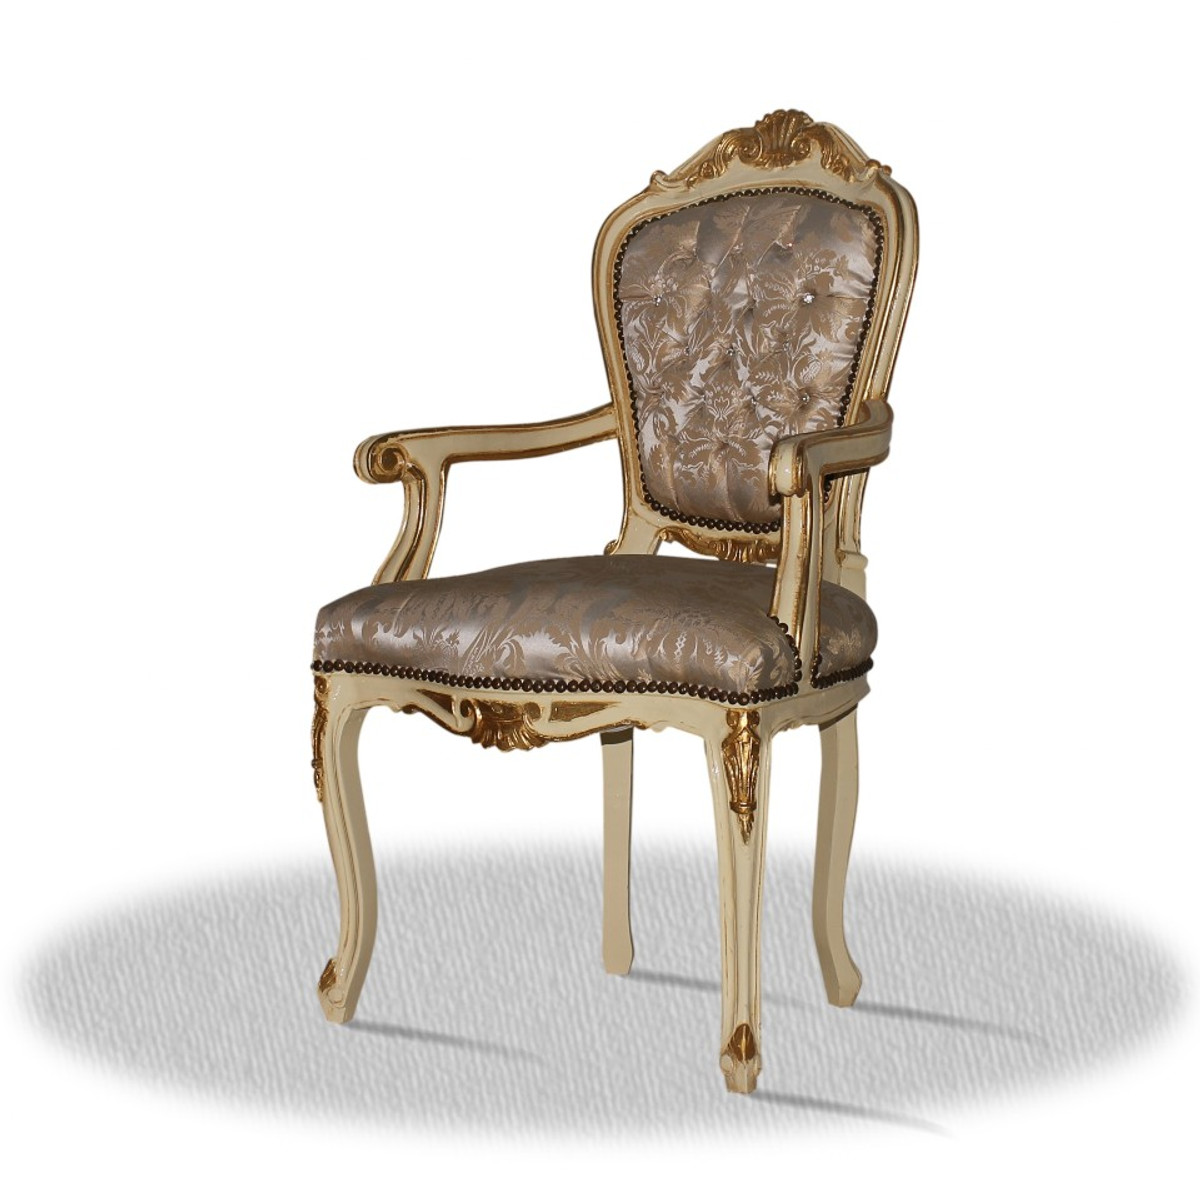 Casa padrino baroque dining room chair with armrests creme gold silver bild